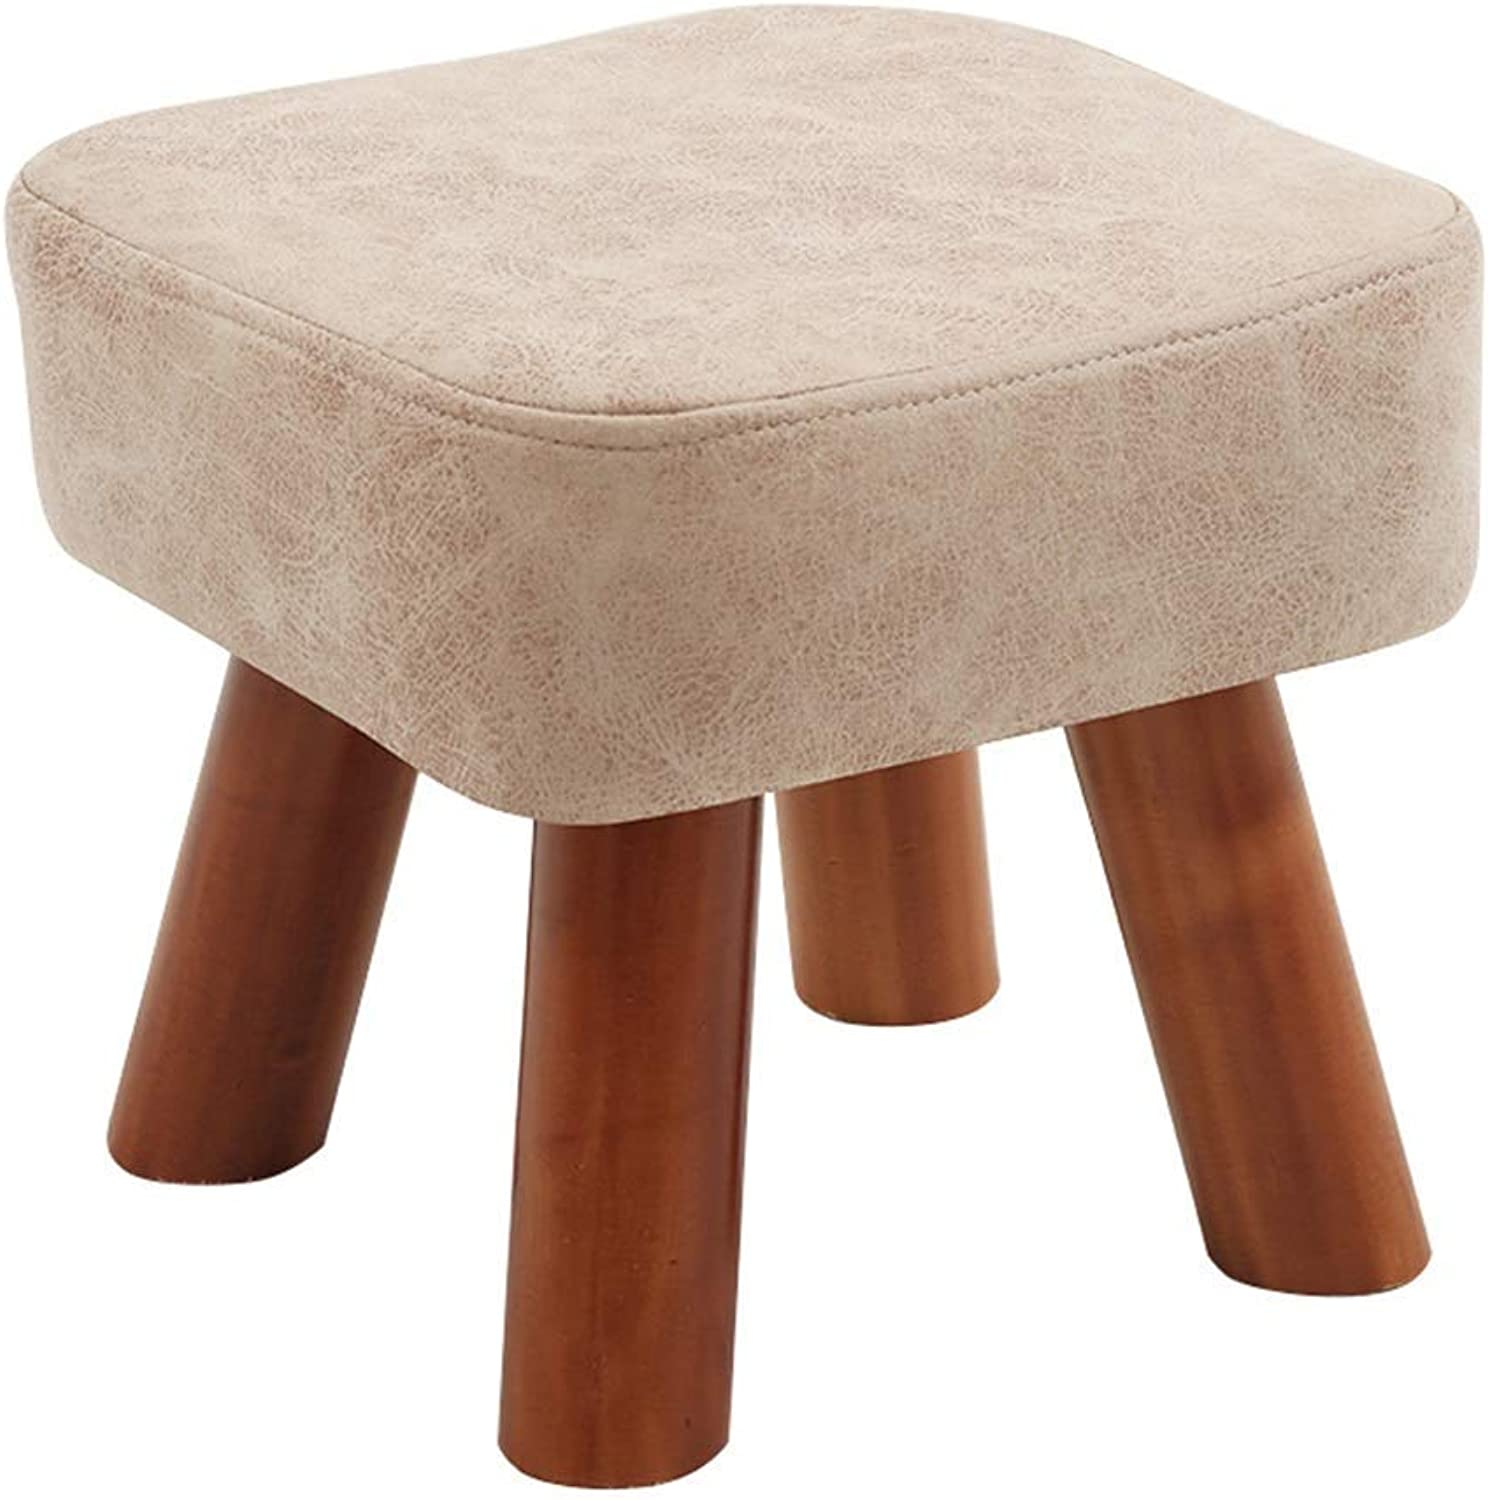 Wooden shoes Bench PU Leather Seat Padded Footstool with Solid Wood Frame (Beige) (Size   28×28×18cm)